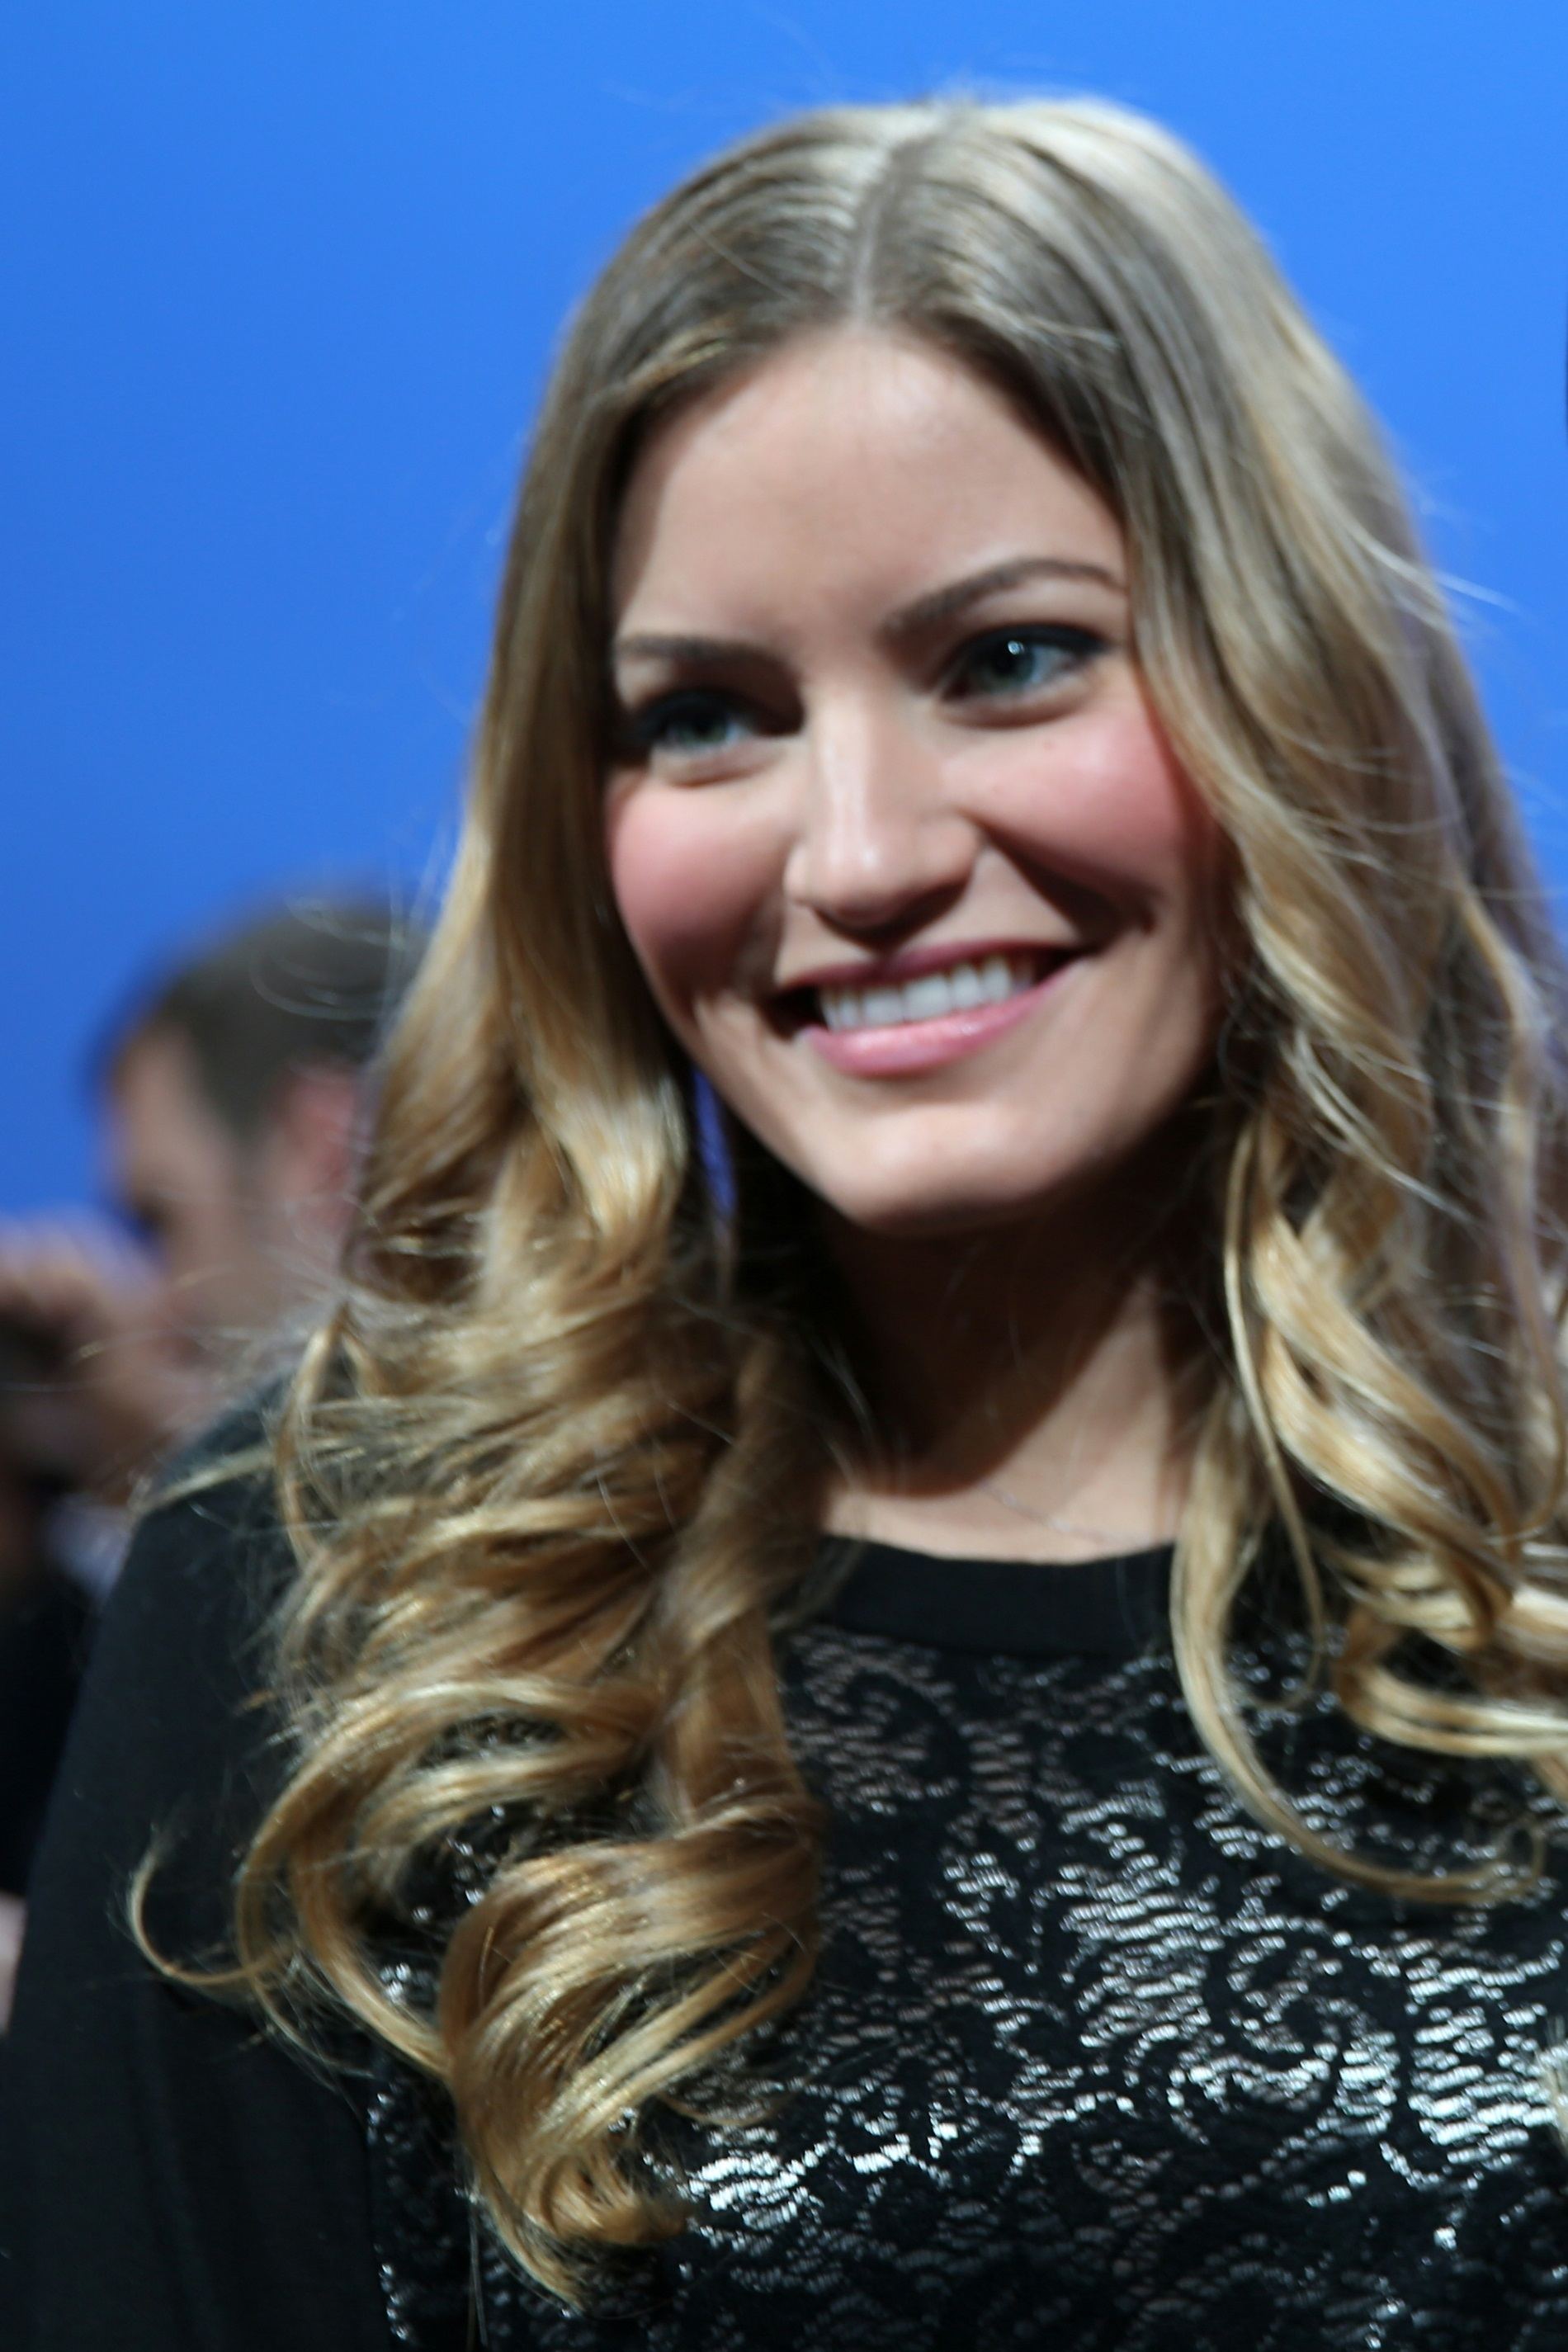 iJustine - Wikipedia, the free encyclopedia